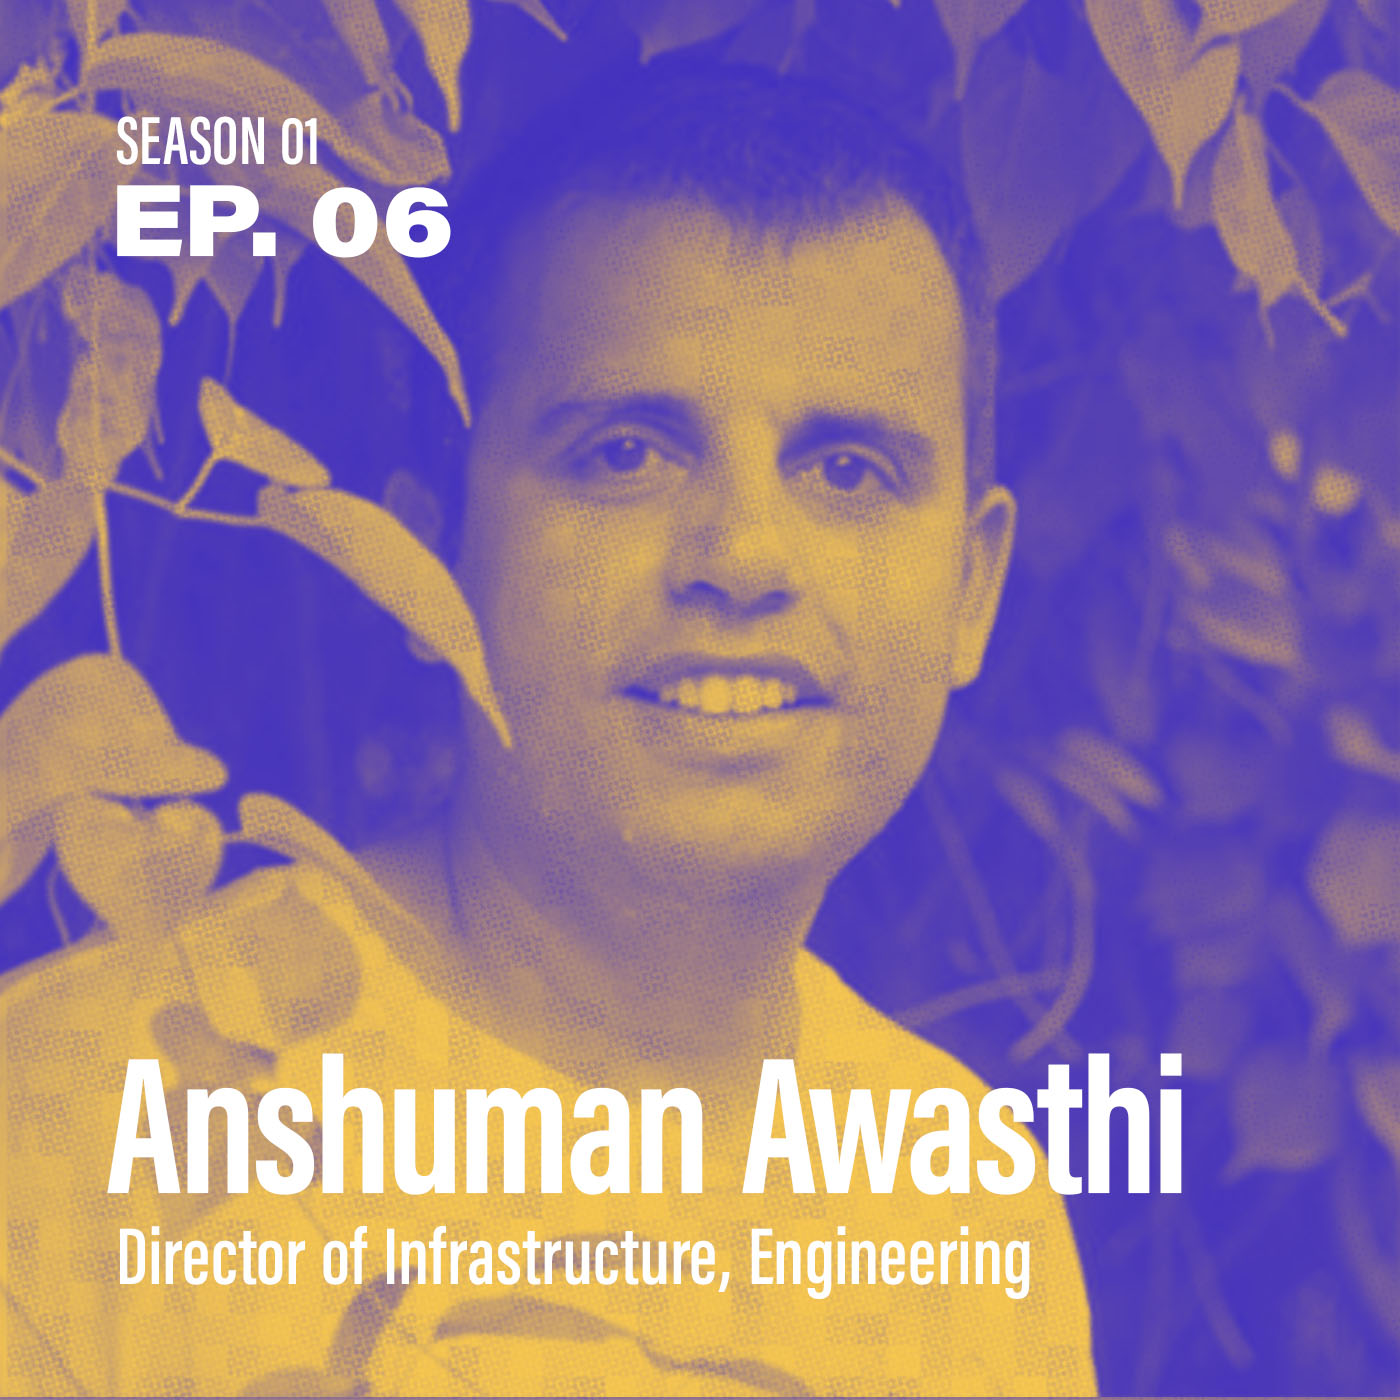 """Season 1, Episode 6: """"How did they adopt SD-WAN so fast?"""" with Anshuman Awasthi, Director of Infrastructure, Engineering @ Leading Retailer"""